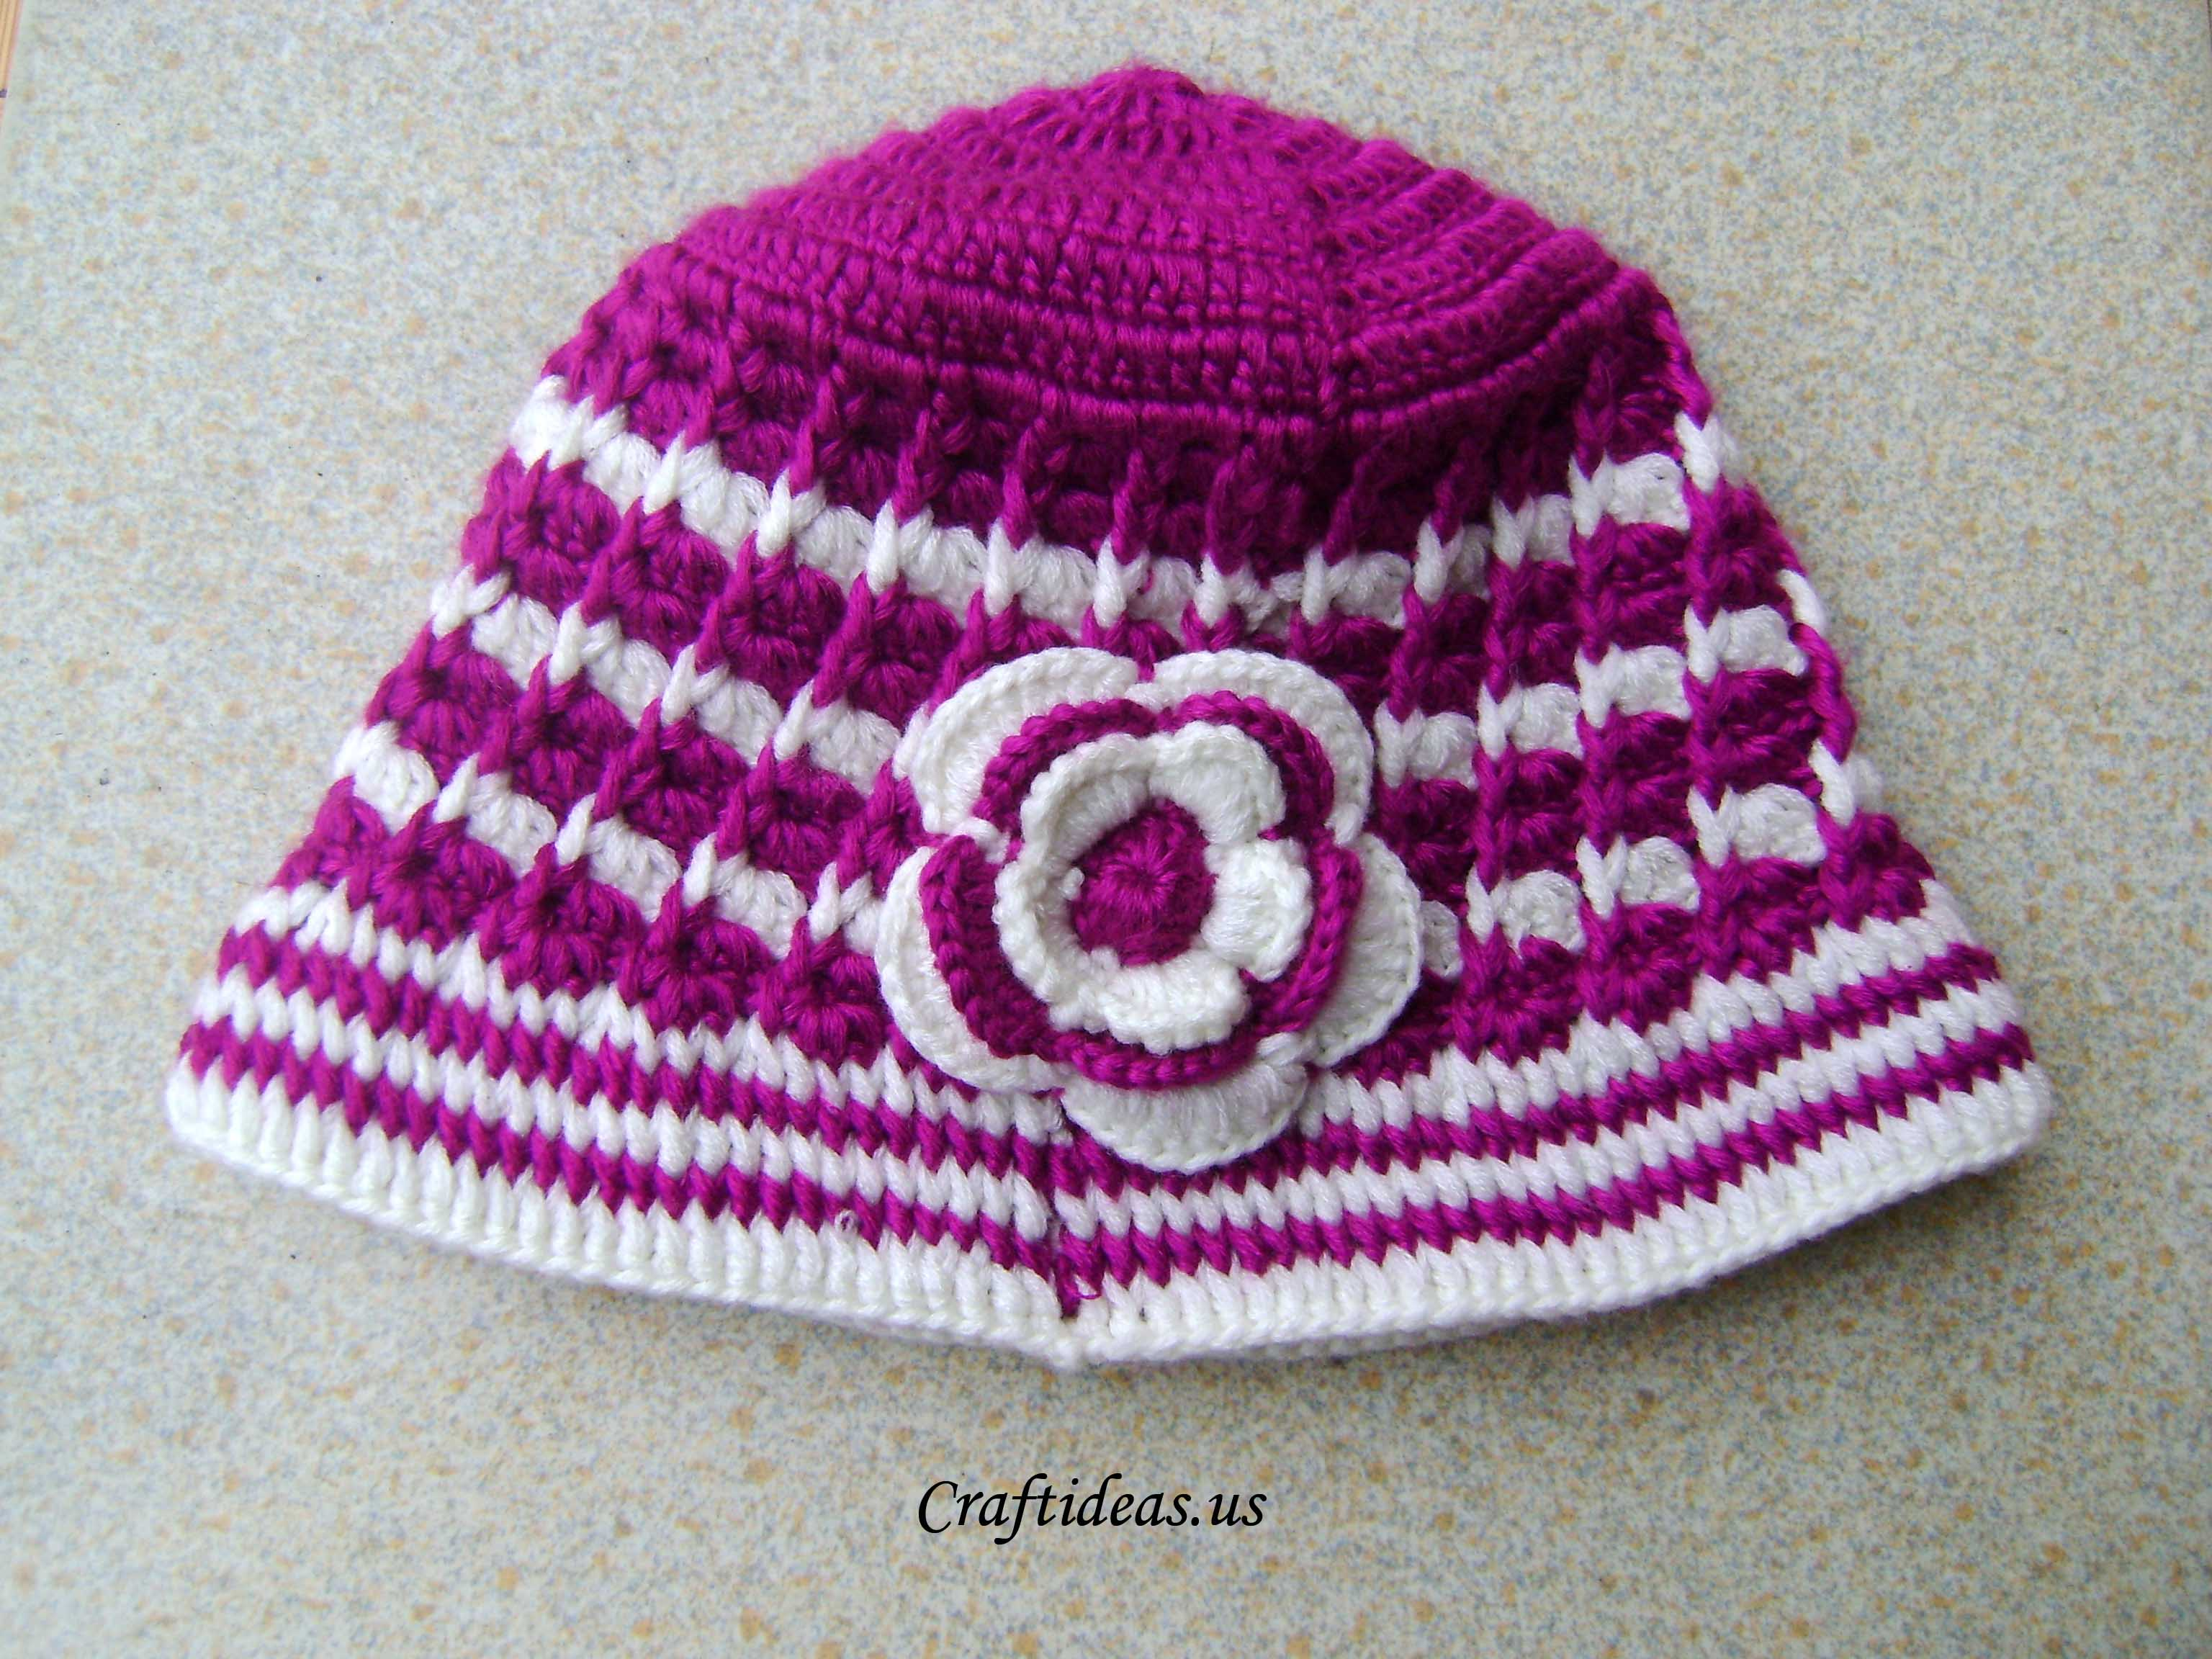 Crocheting Tutorials : crochet hat tutorial